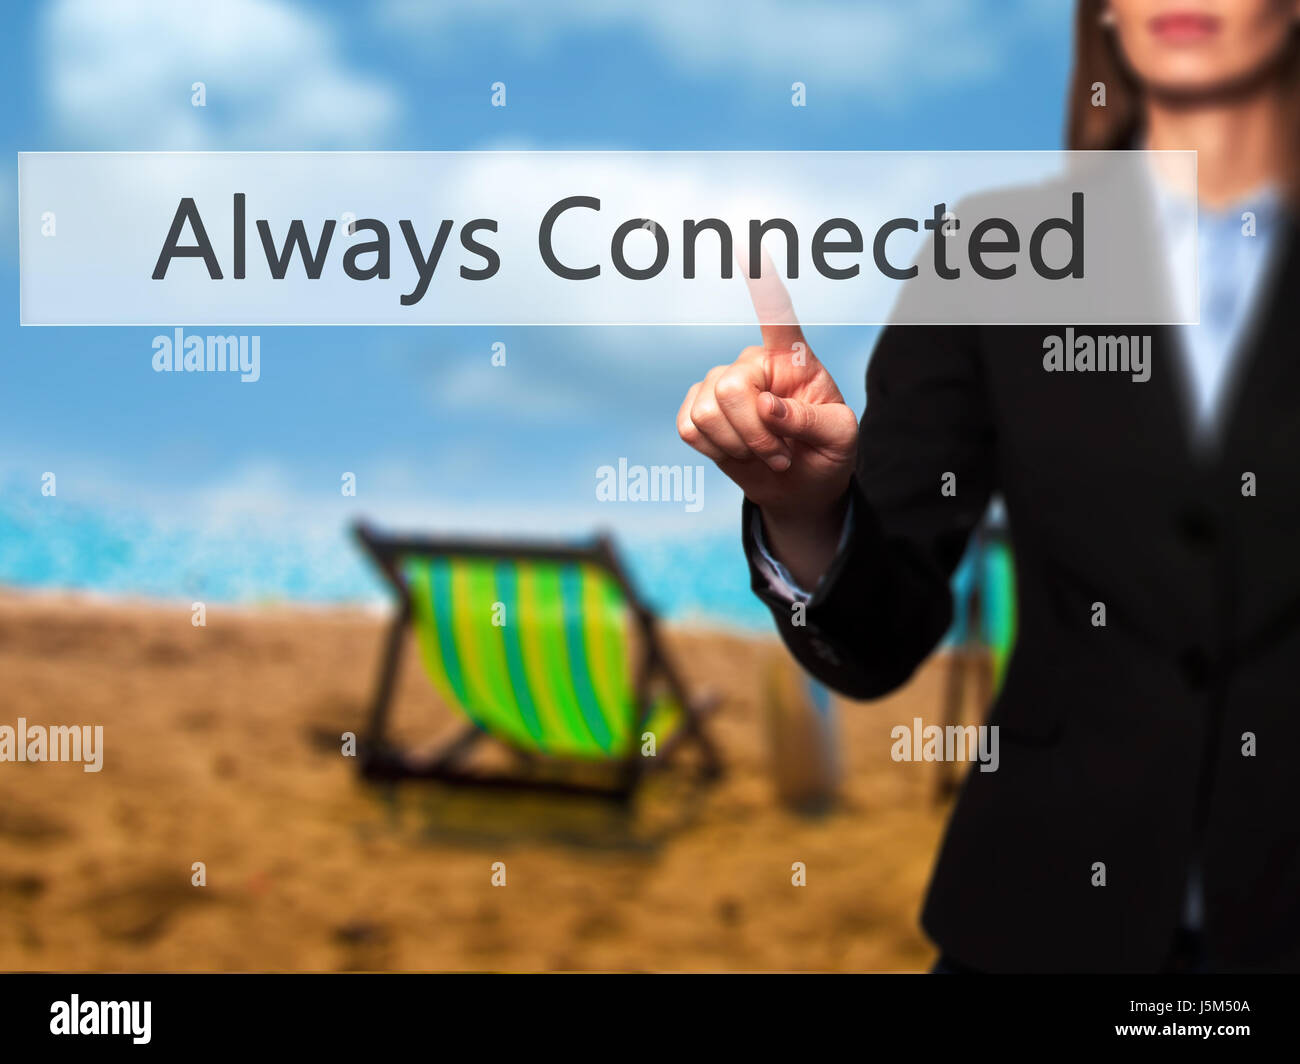 Always Connected - Businesswoman hand pressing button on touch screen interface. Business, technology, internet - Stock Image